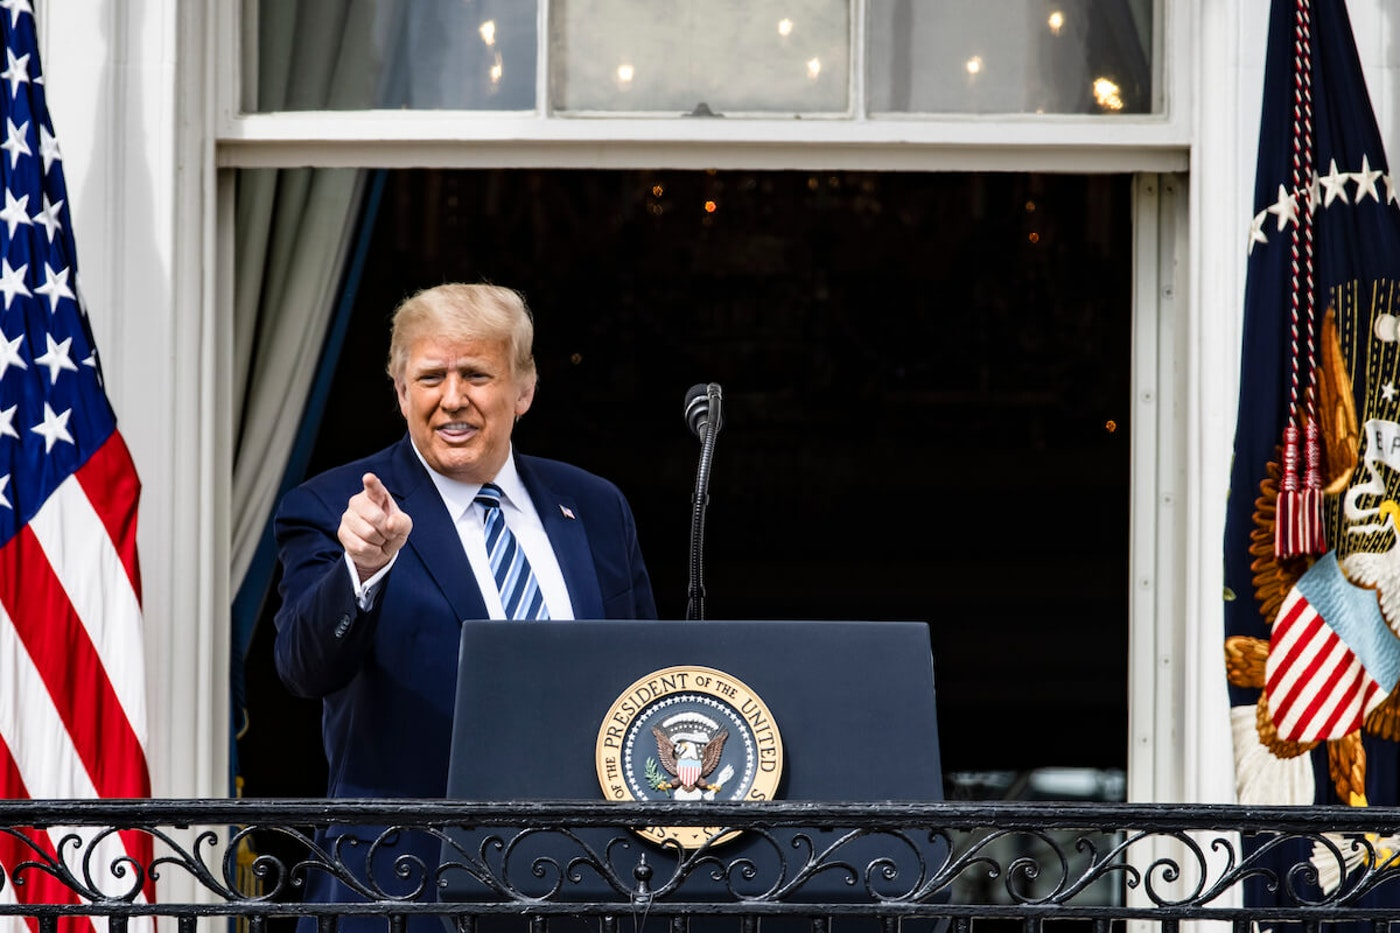 President Donald Trump addresses a crowd on the South Lawn of the White House Saturday. This was the president's first in-person appearance after being cleared by his doctors following his diagnosis and treatment of the coronavirus. (Photo by Samuel Corum/Getty Images)